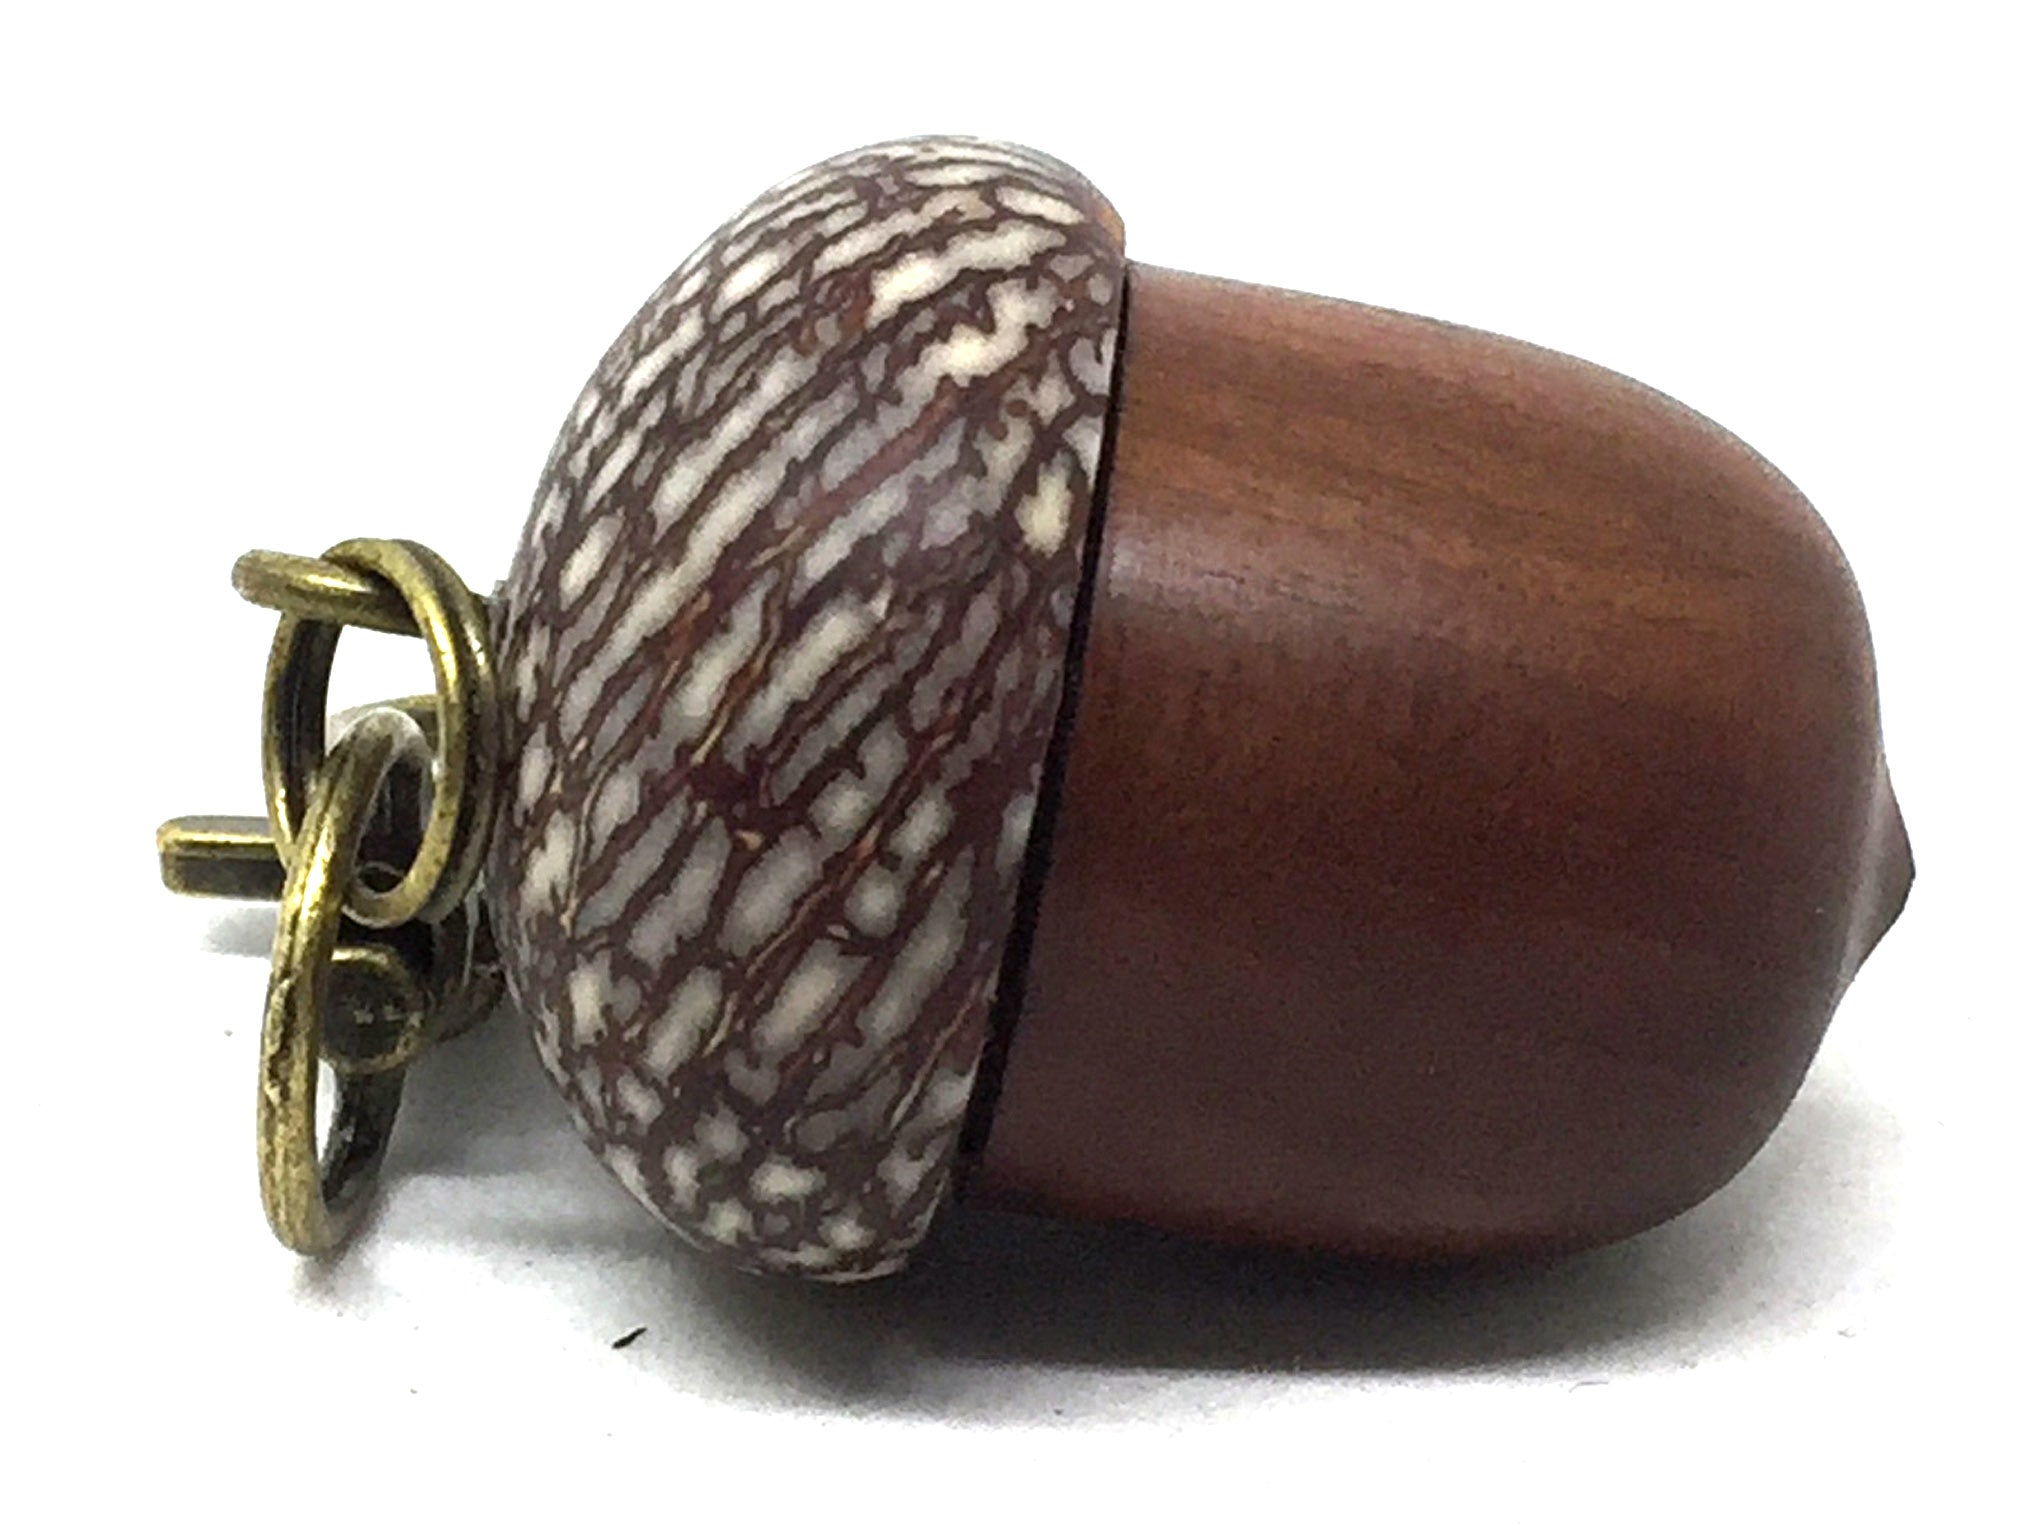 LV-5072 Manzanita & Betel Nut Acorn Pendant Box, Charm, Pill Holder-SCREW CAP